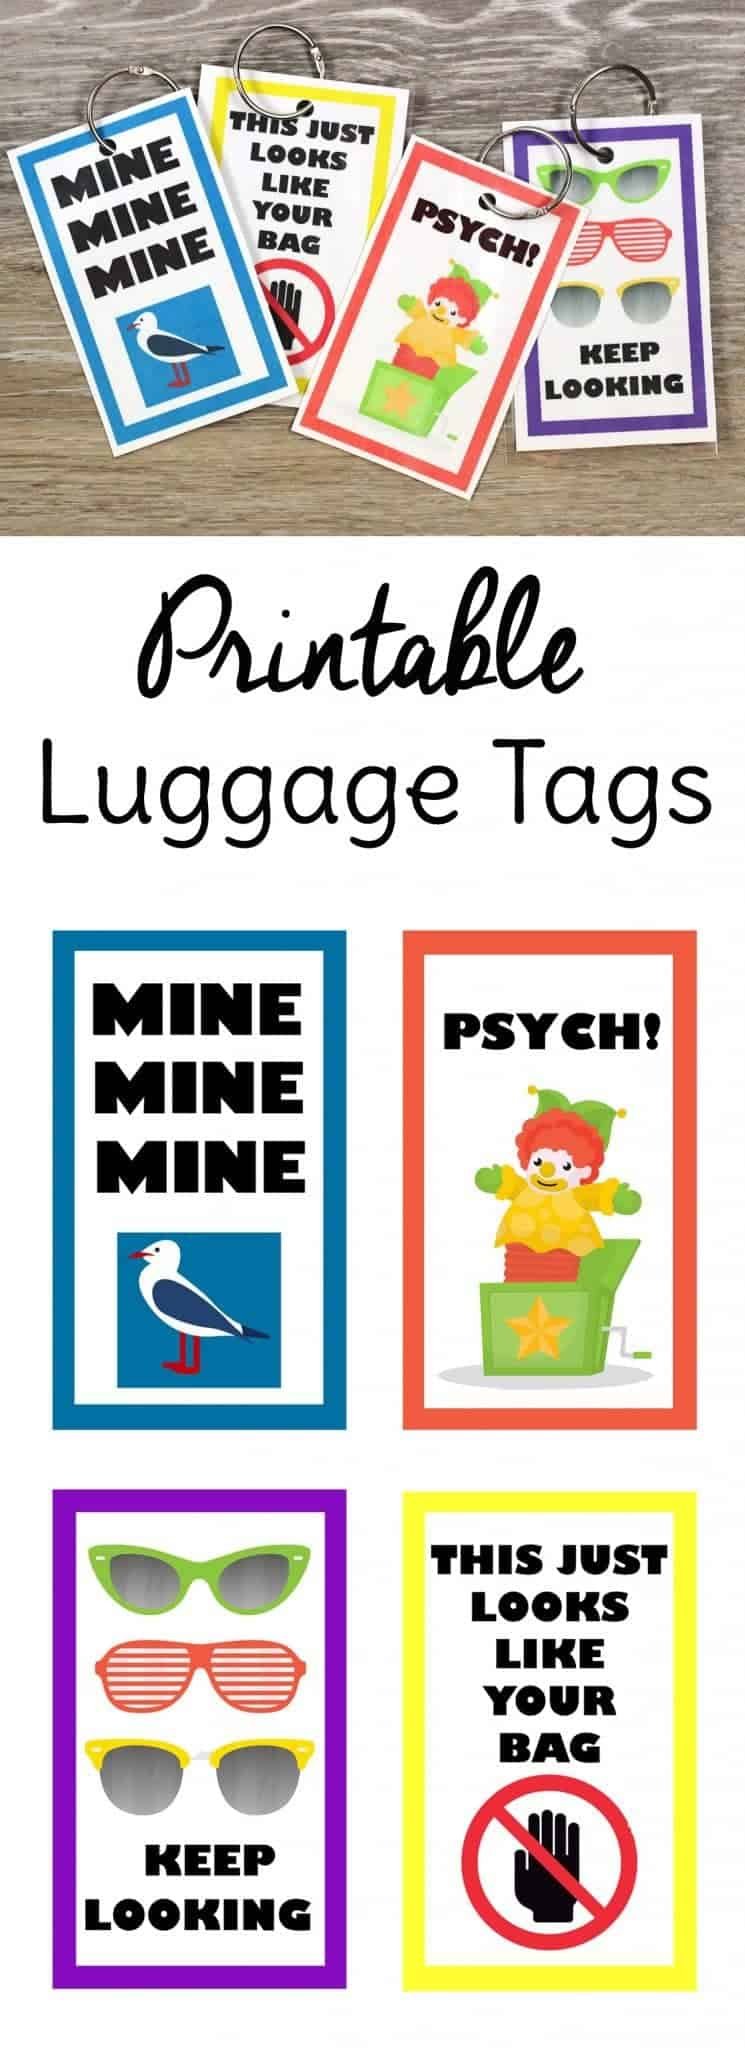 photograph relating to Luggage Tags Printable identify Amusing Cost-free Printable Baggage Tags Lovable T Would make A few